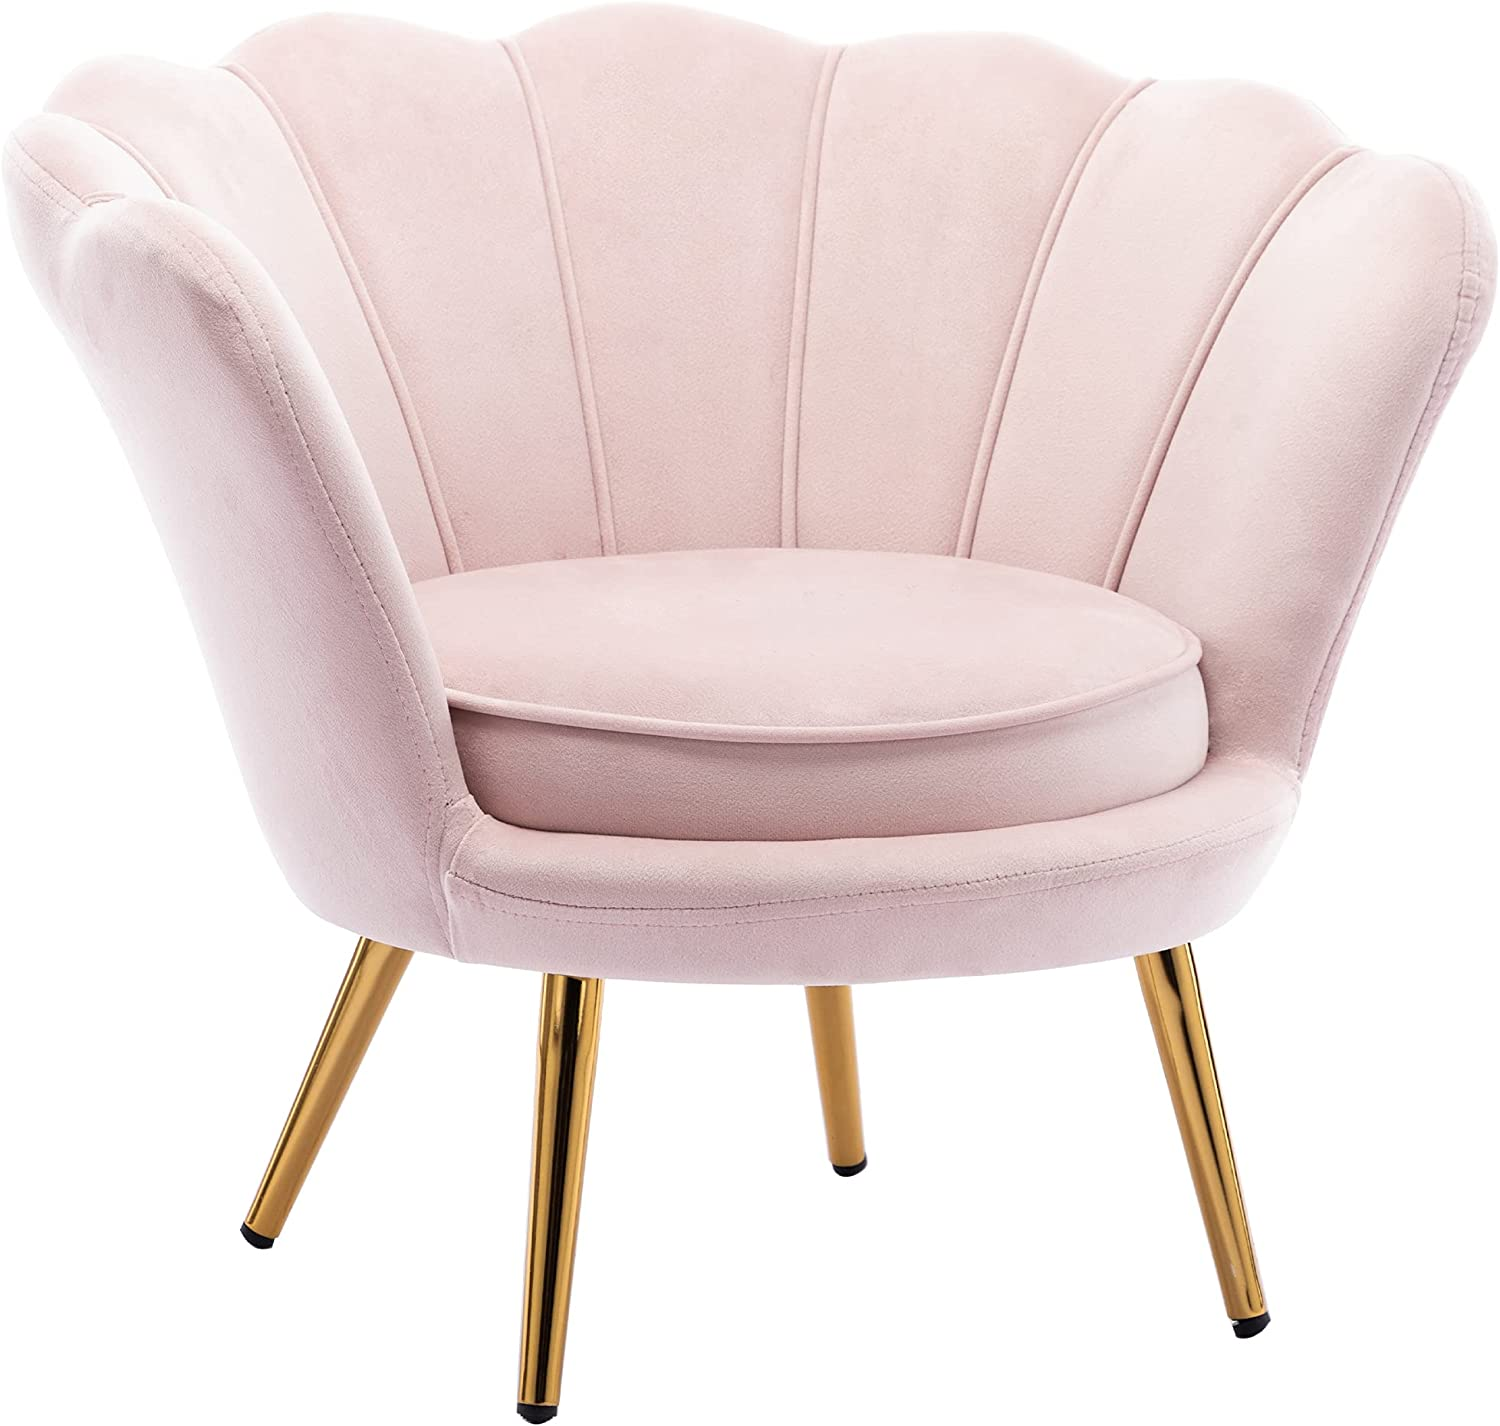 Super beauty product restock Quantity limited quality top Cute Velvet Kids Chair Upholstered Accent Child Toddler Armchair